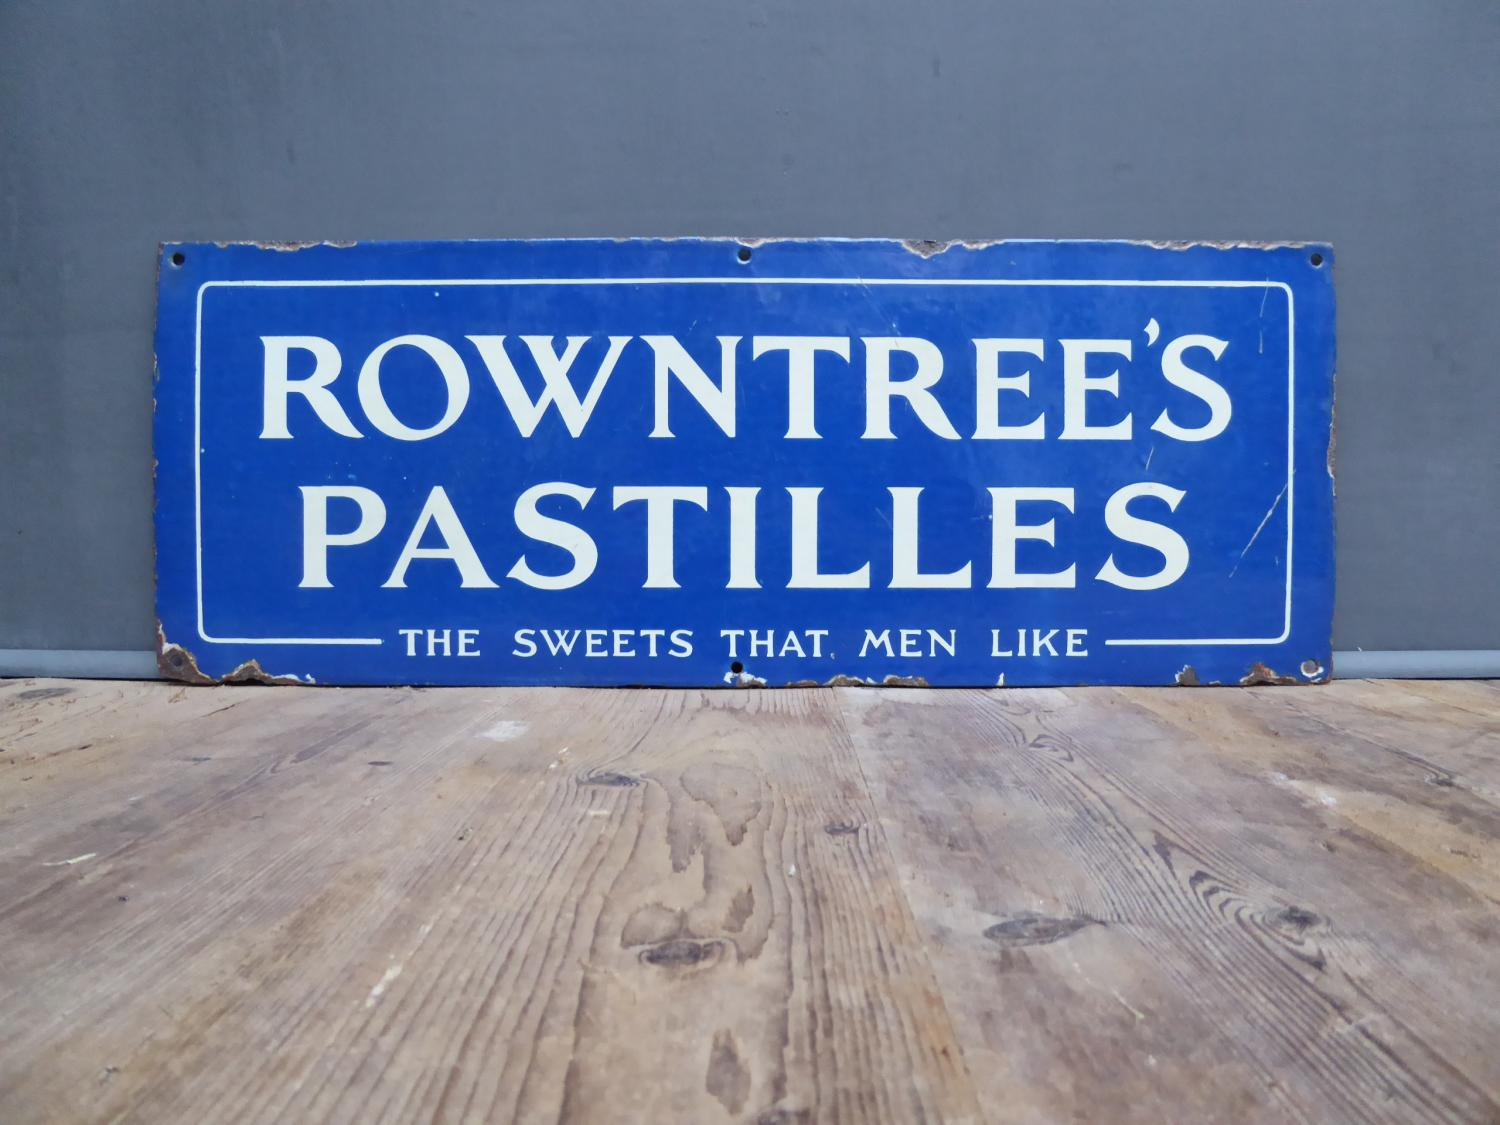 Rowntrees Pastilles 'Sweets Men Like' Enamel